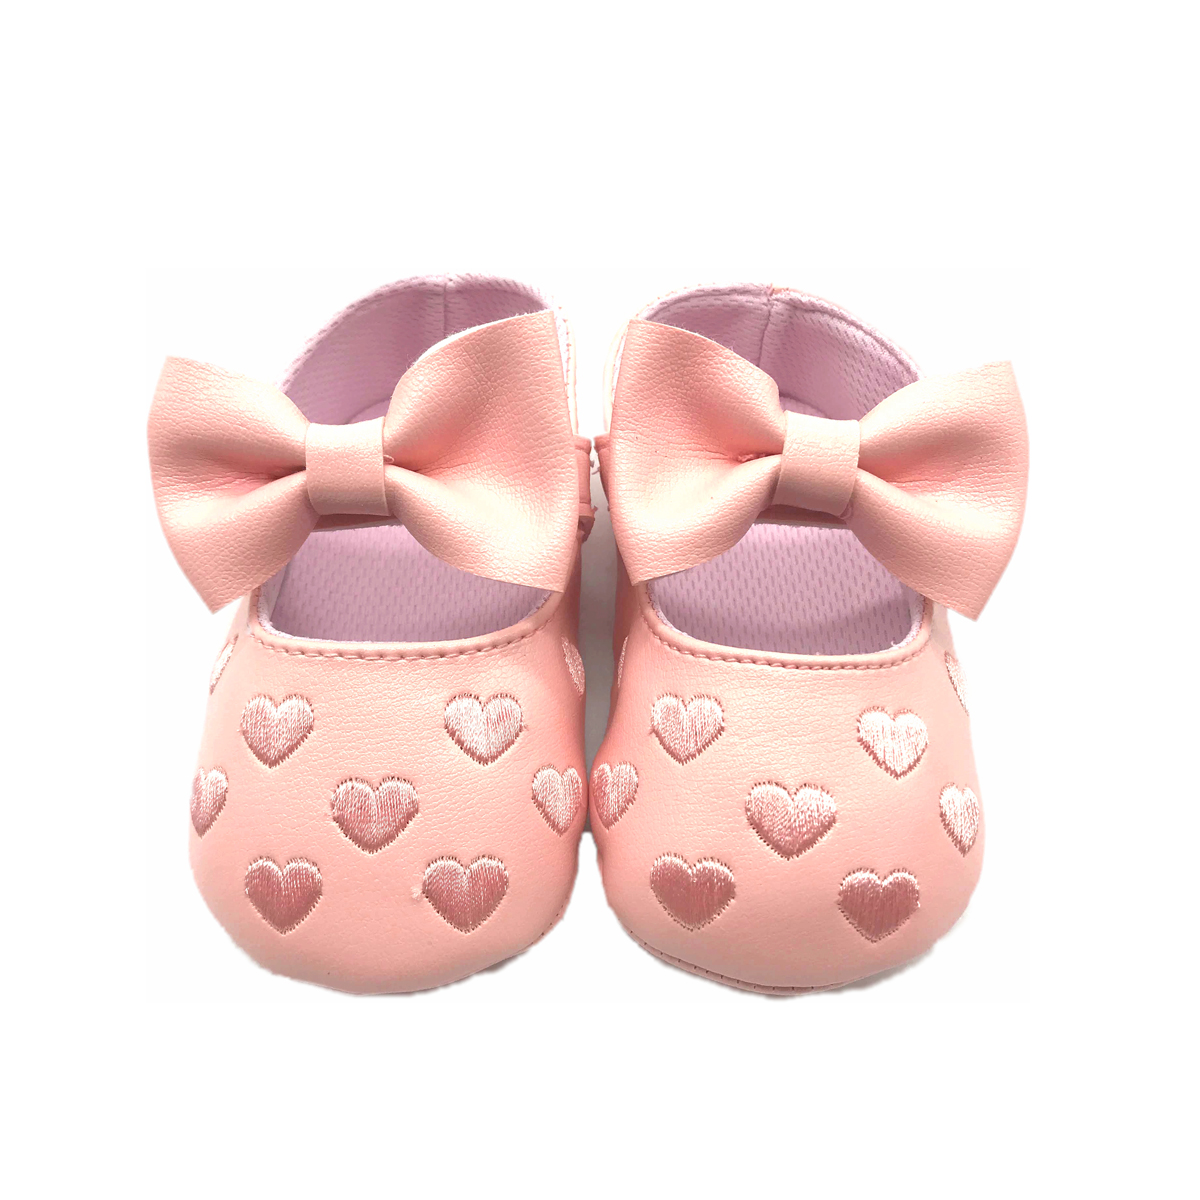 C2bb Chaussons Coeur Et Noeud Ange Rose Fille Rose Taille